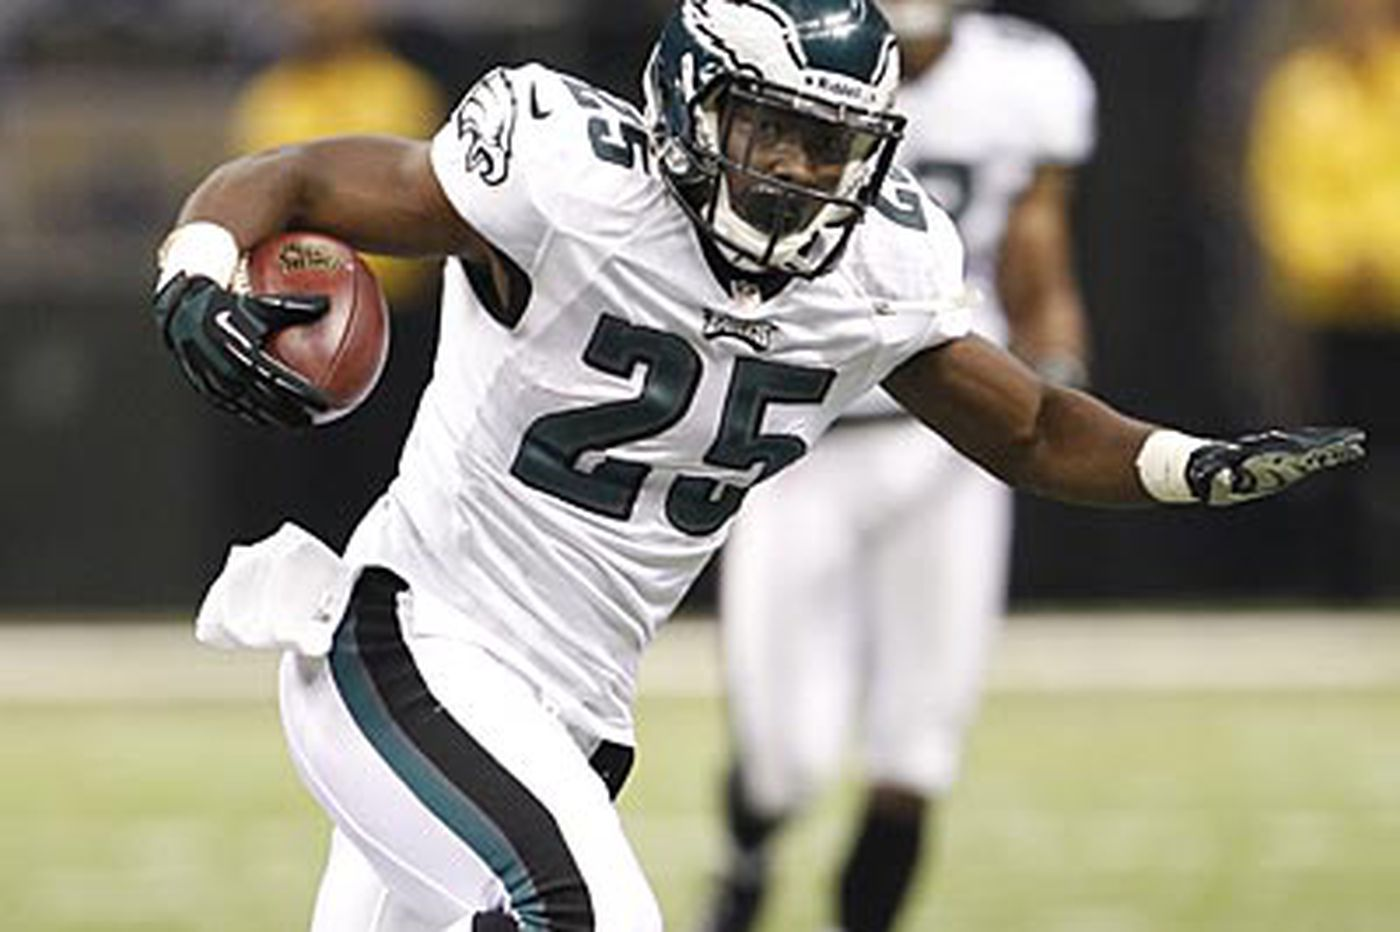 Eagles Notes: LeSean McCoy is cleared to return for Eagles